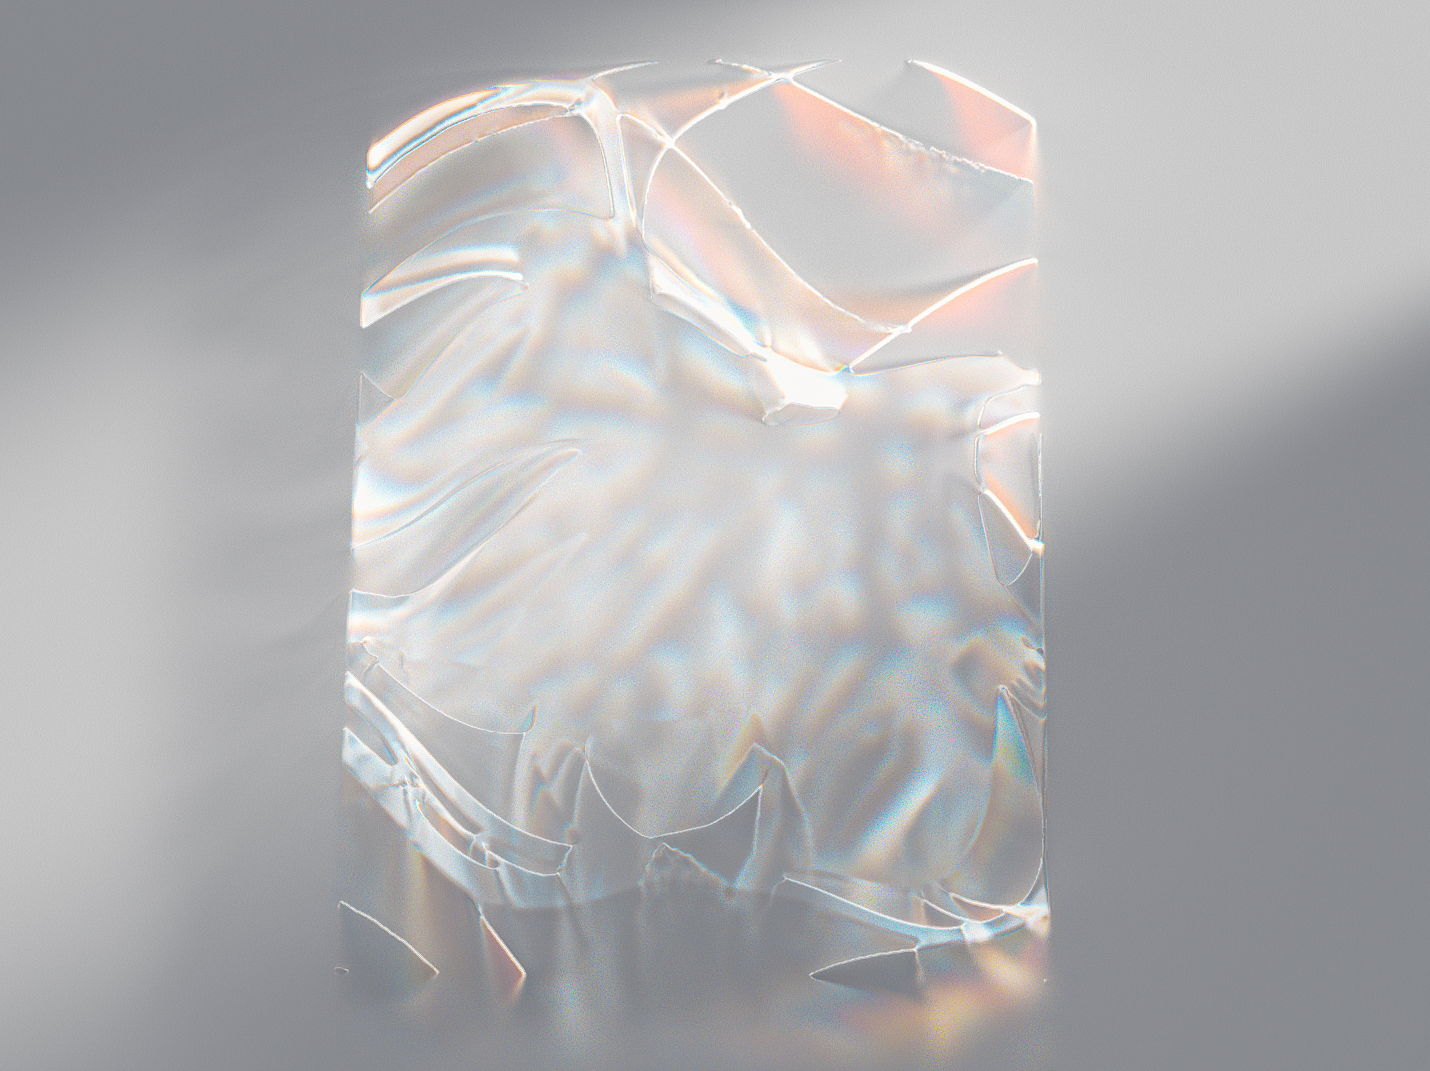 21_01_Projections_Structures_REv_5.Redshift_ROP1_16_9.0001-00000_crop